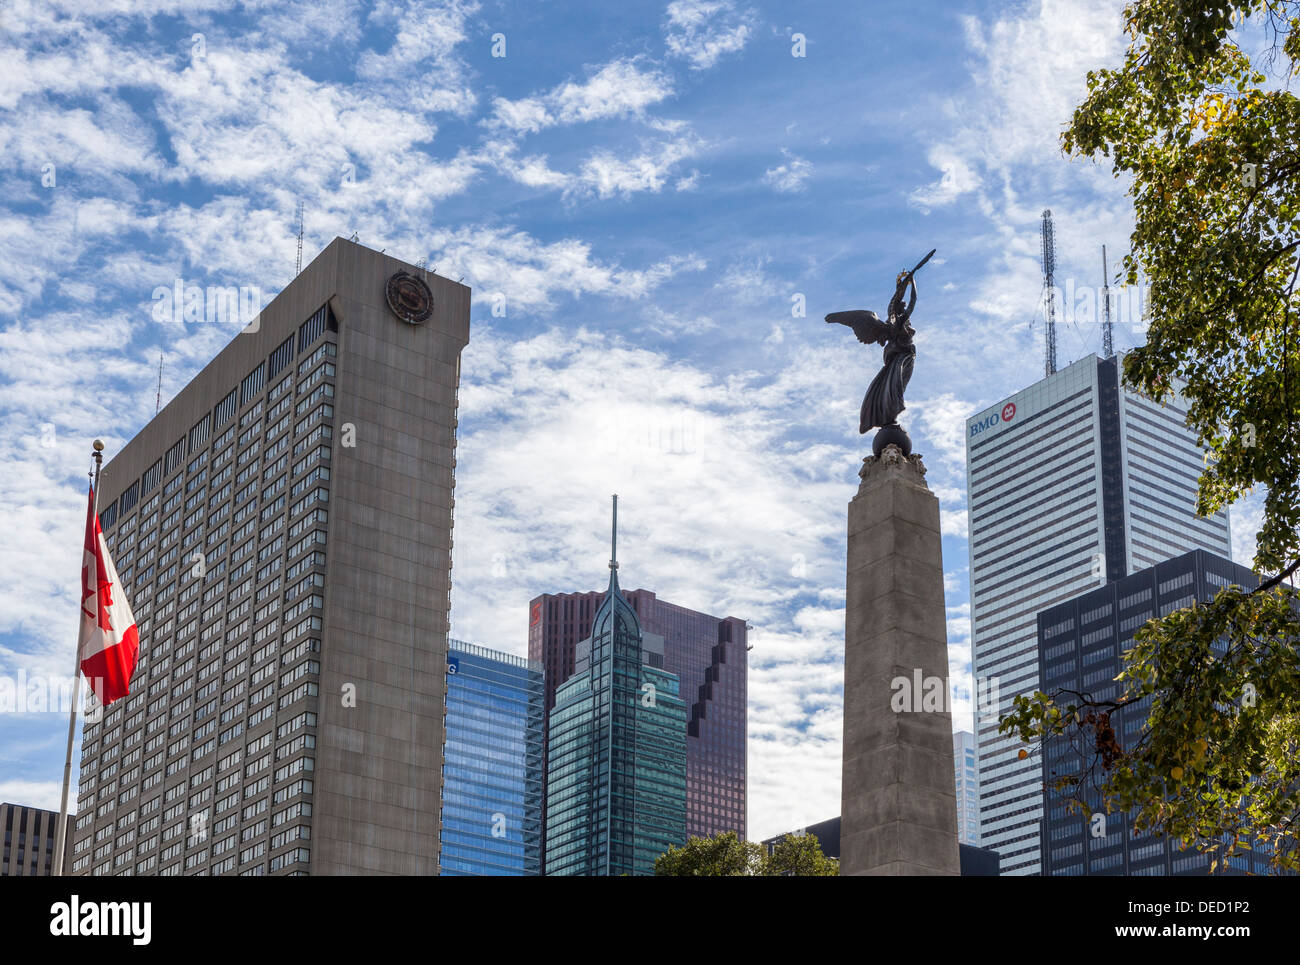 Canadian flag, Winged figure on South African war memorial and modern skyscrapers, BMO, Sheraton Hotel buildings - Toronto - Stock Image